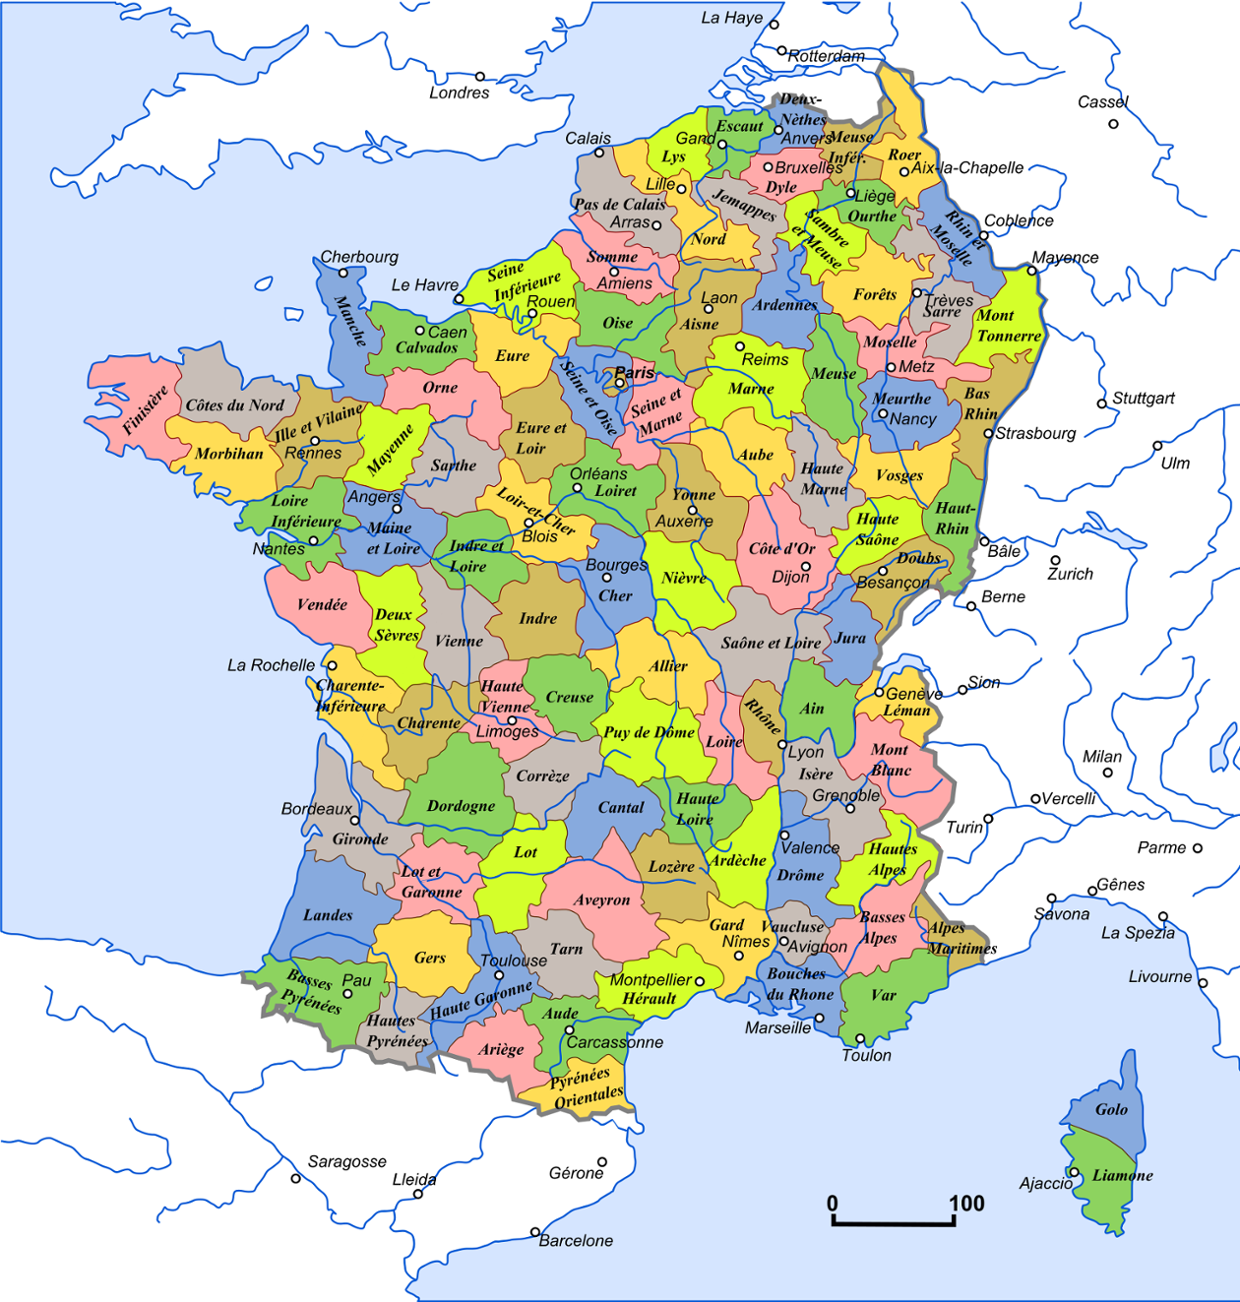 France has the Alps Mountain Range and The Seine River., ...